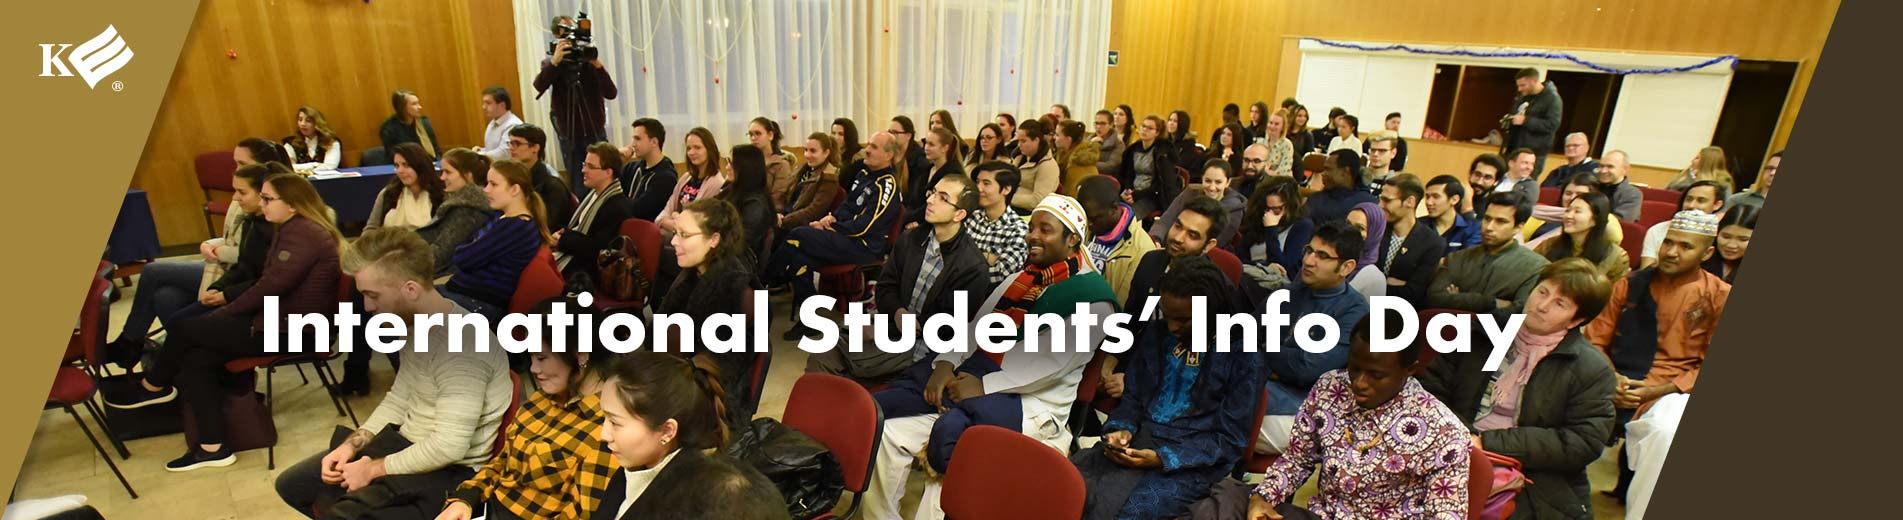 international students info day 20181003 wide